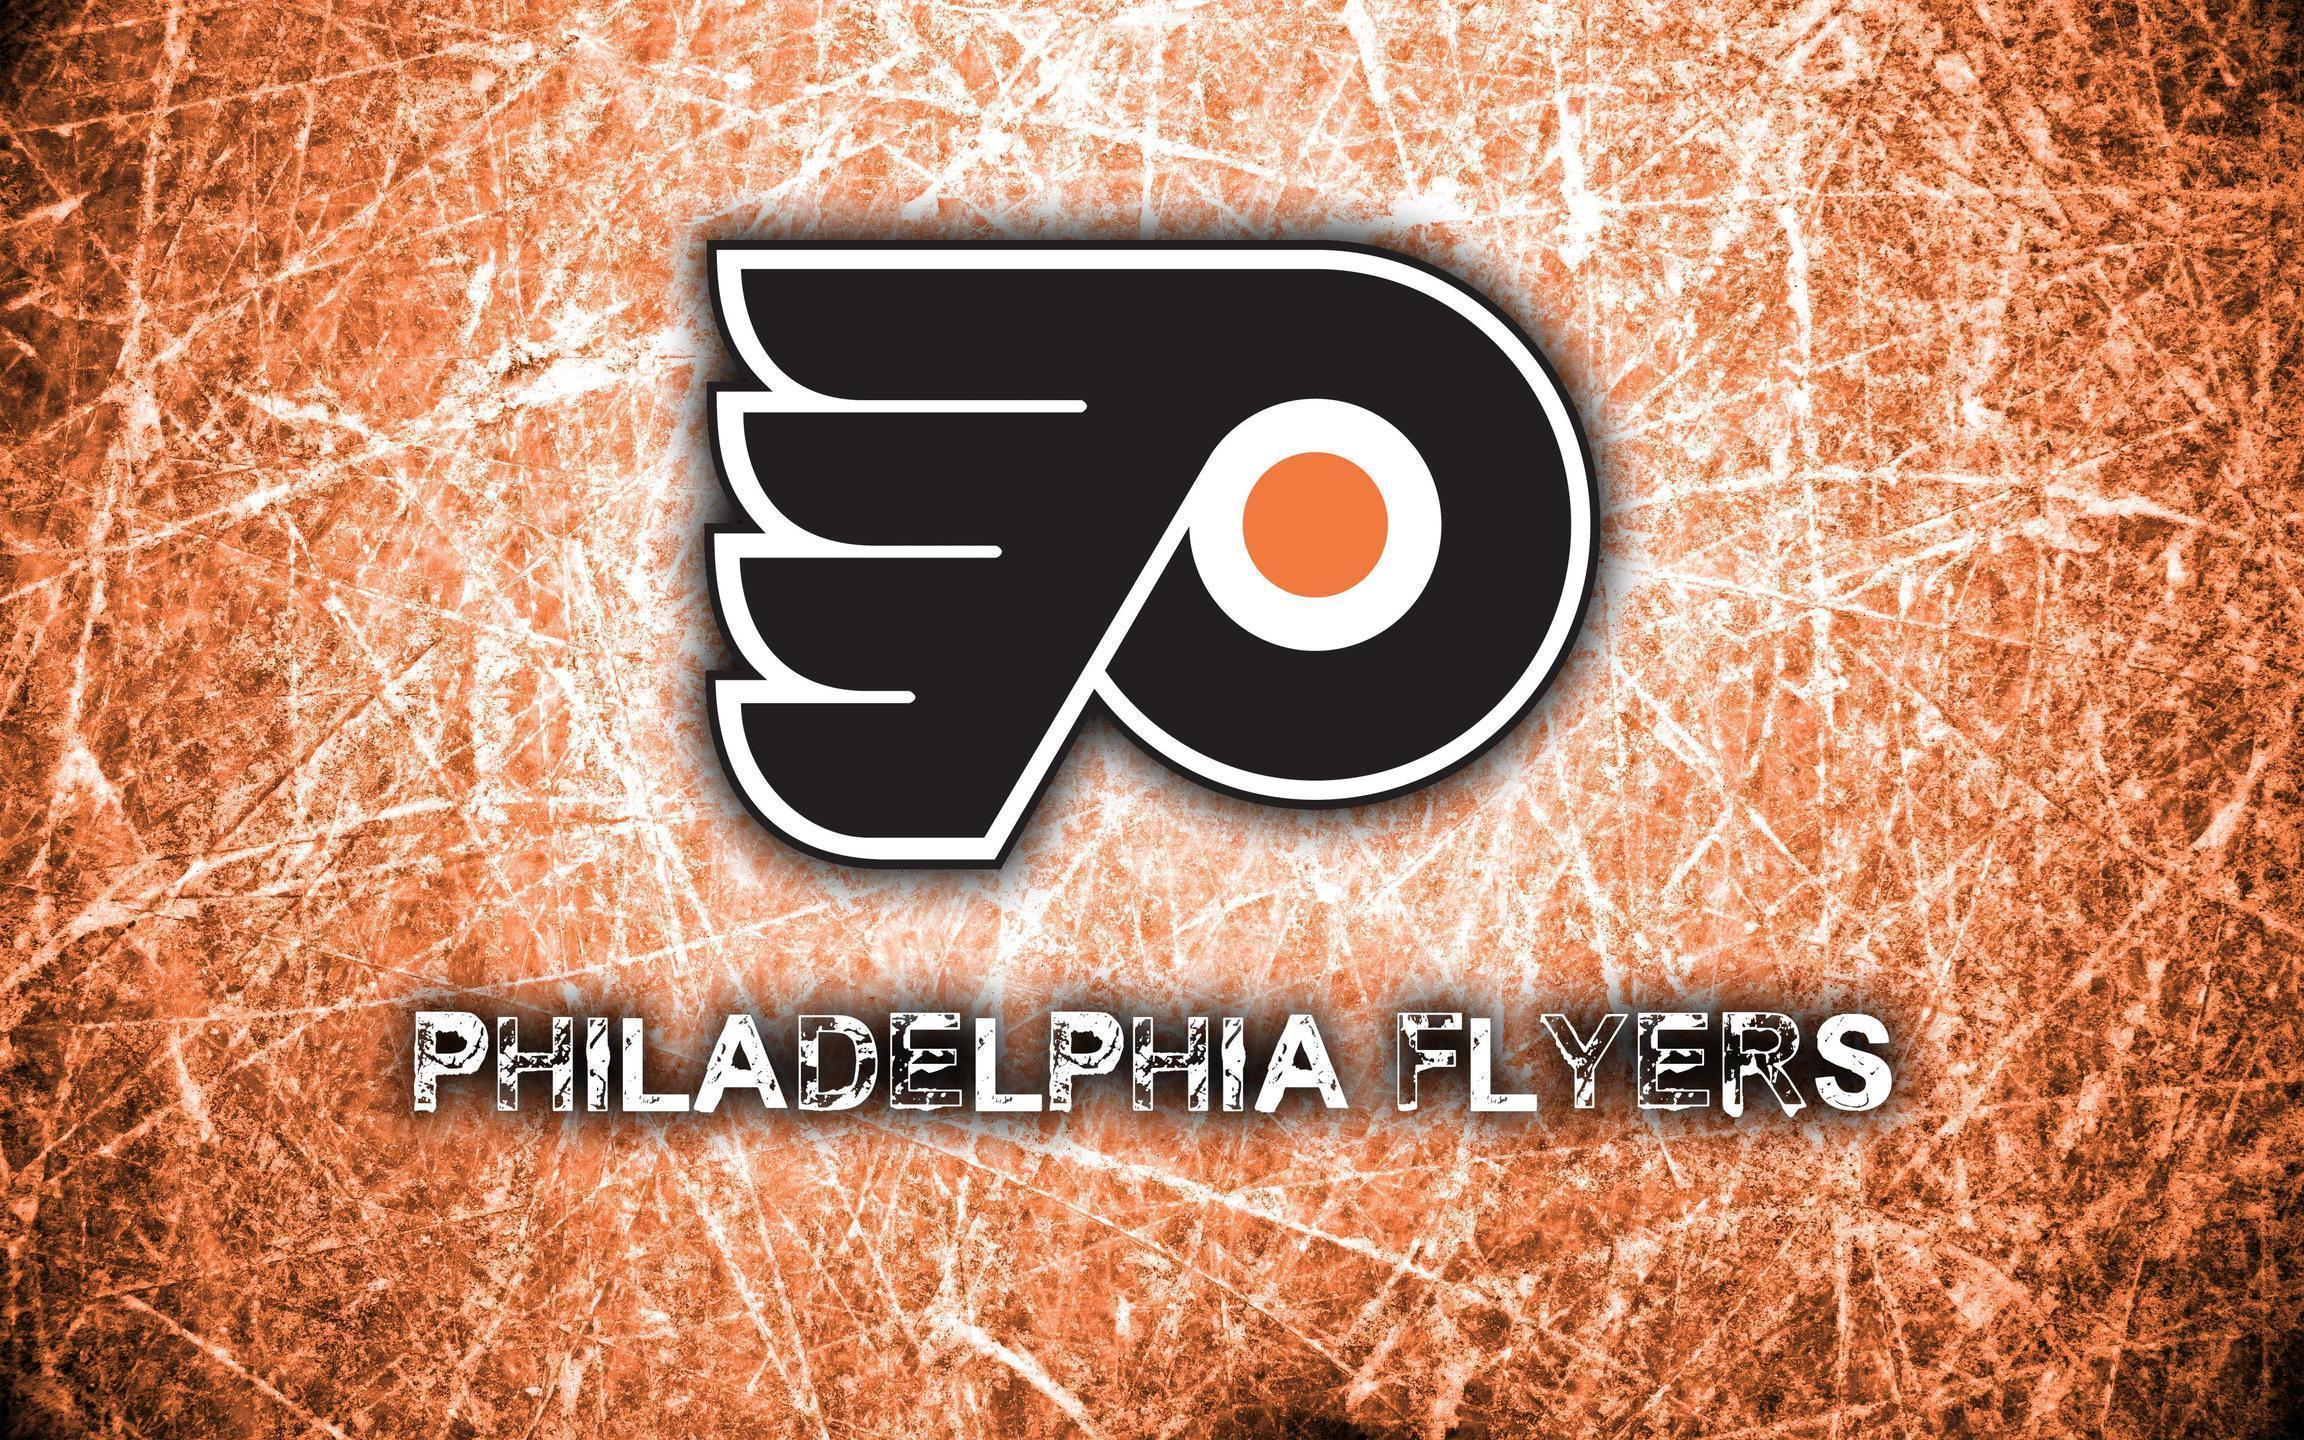 Philadelphia Desktop Wallpaper - WallpaperSafari